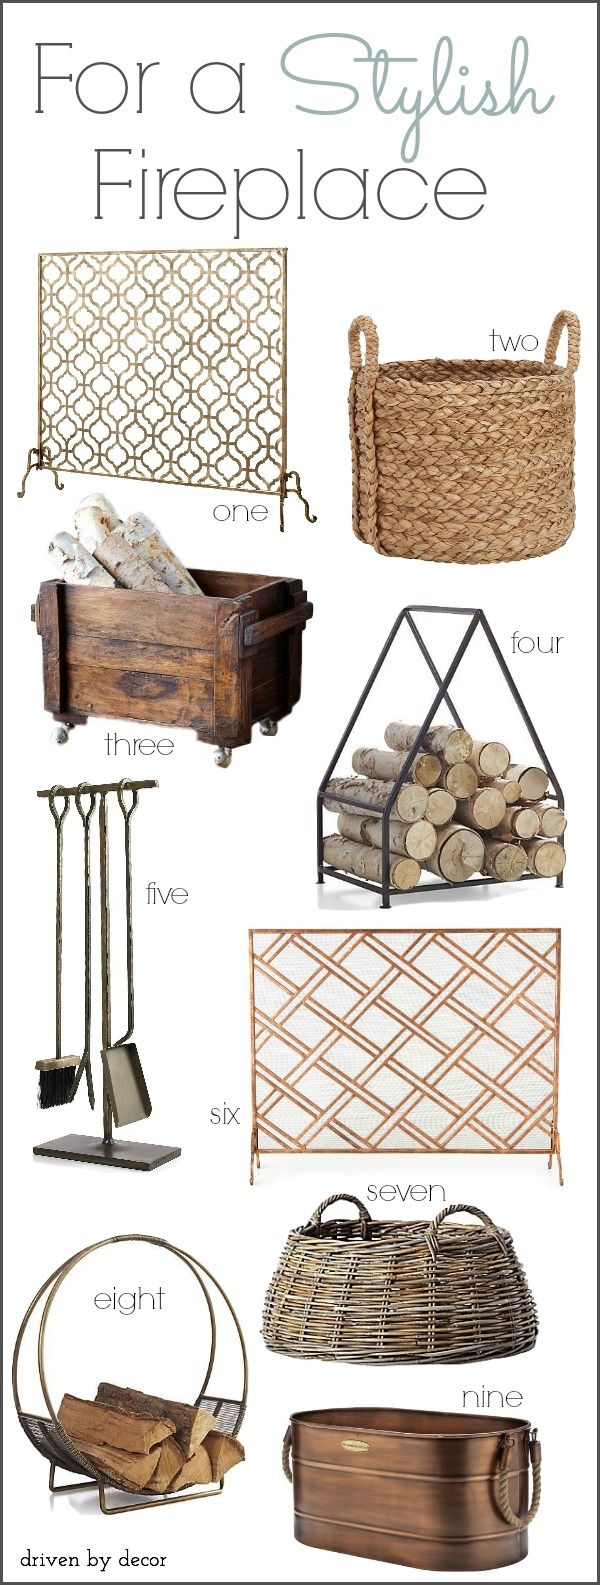 Stylish Fireplace Accessories (Fireplace Screens, Log Holders, & Tools) - Post includes direct links!